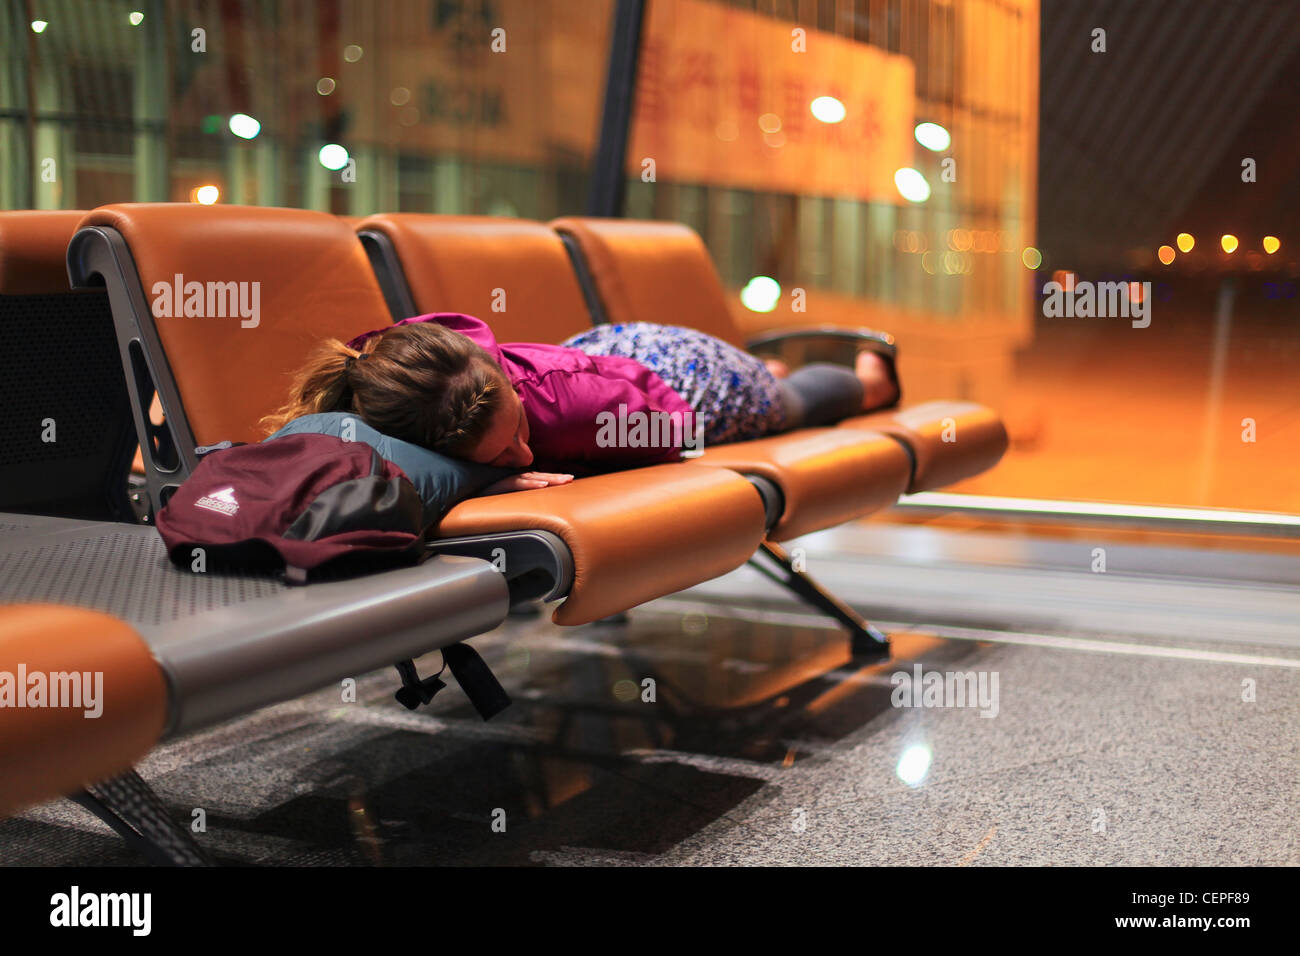 a girl sleeping on chairs at an airport; beijing, china - Stock Image